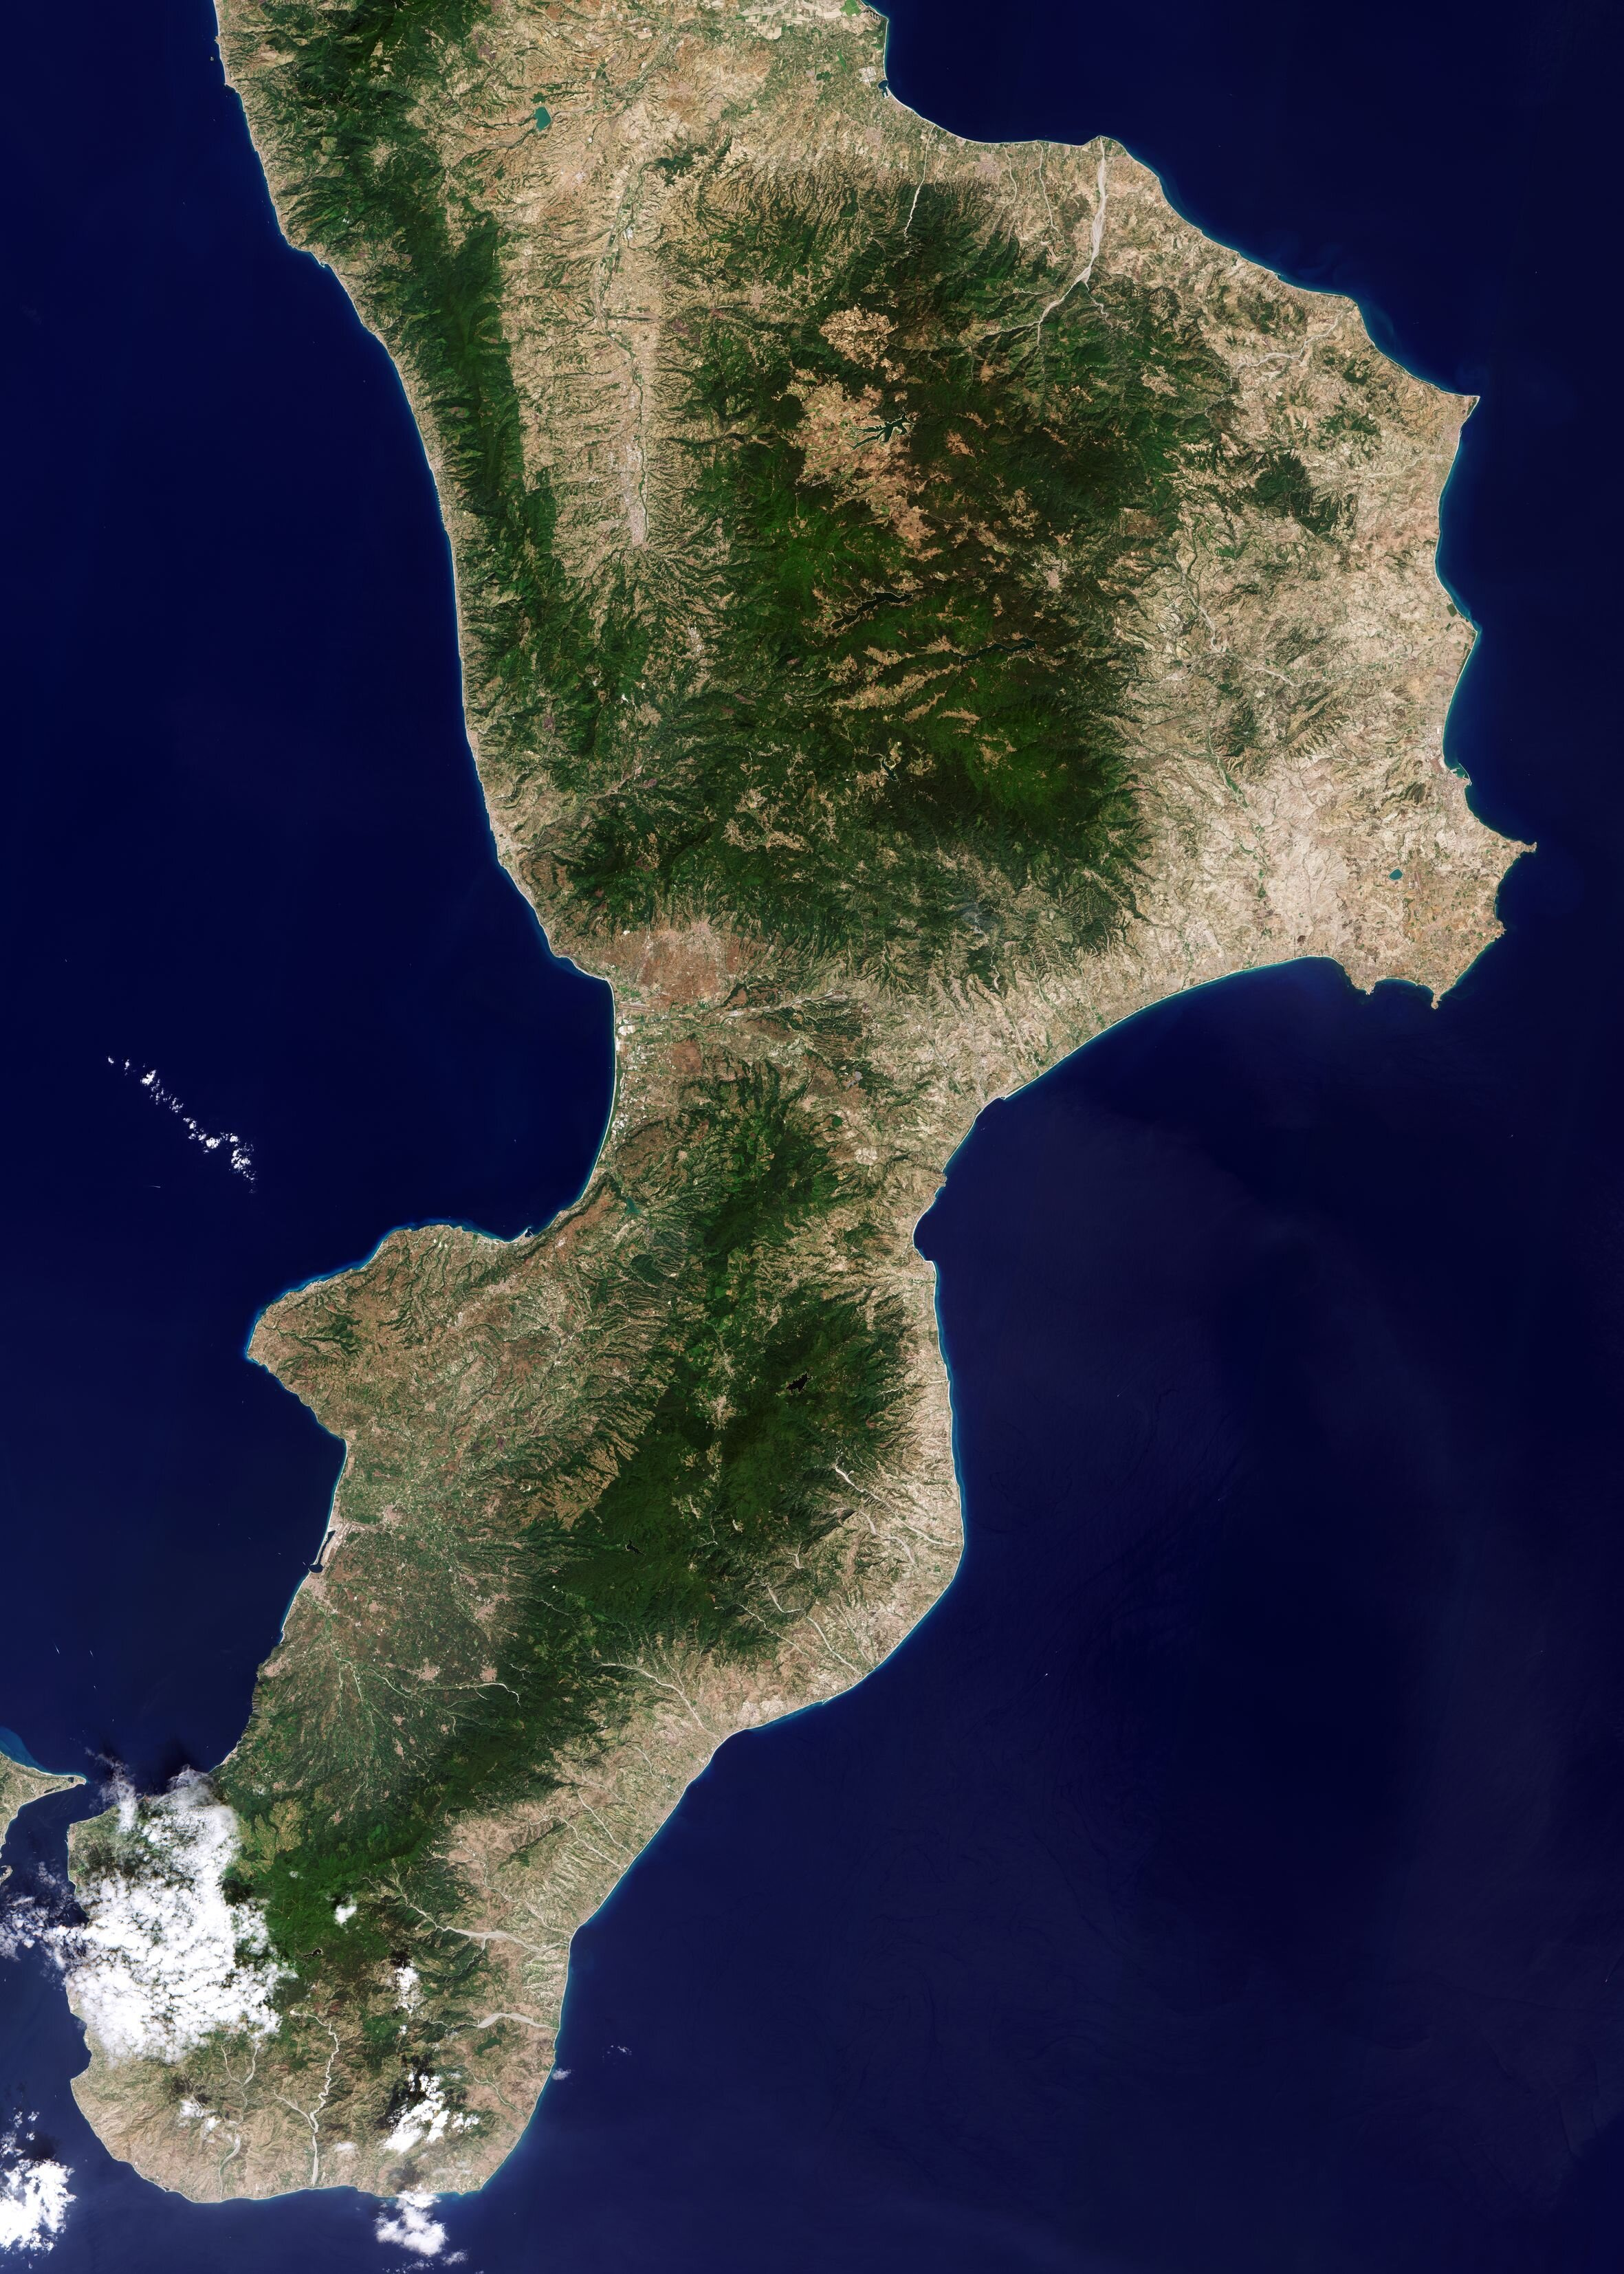 Image: Calabria, Italy, from space